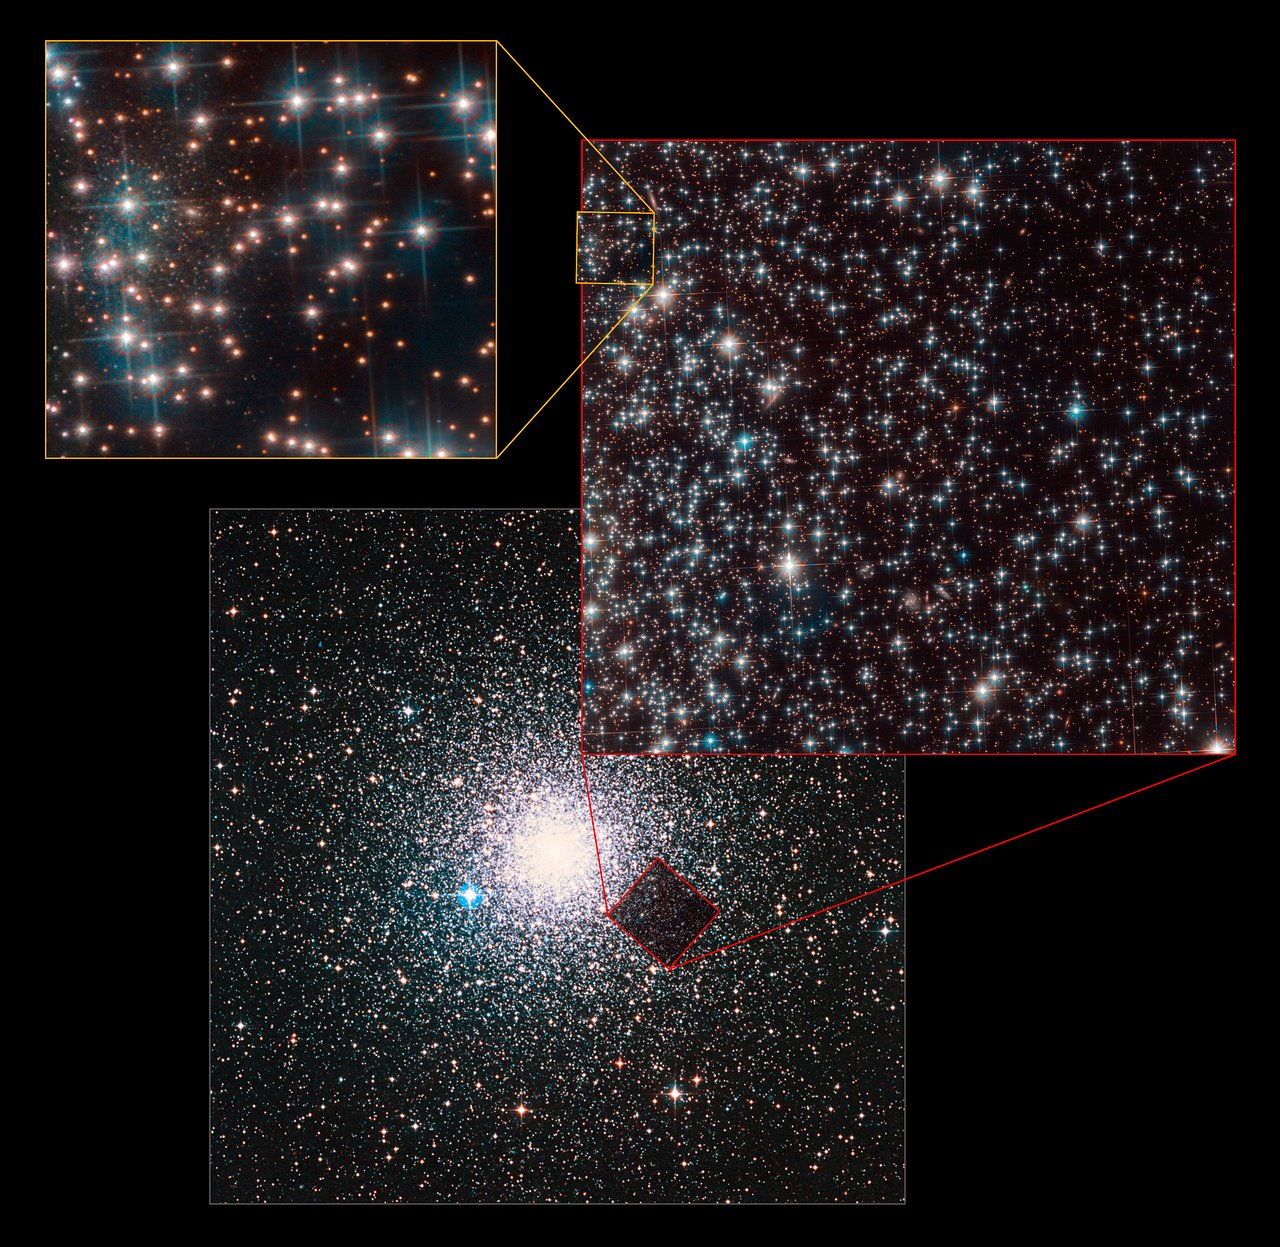 Hubble just spotted a never-before-seen galaxy hiding in plain sight